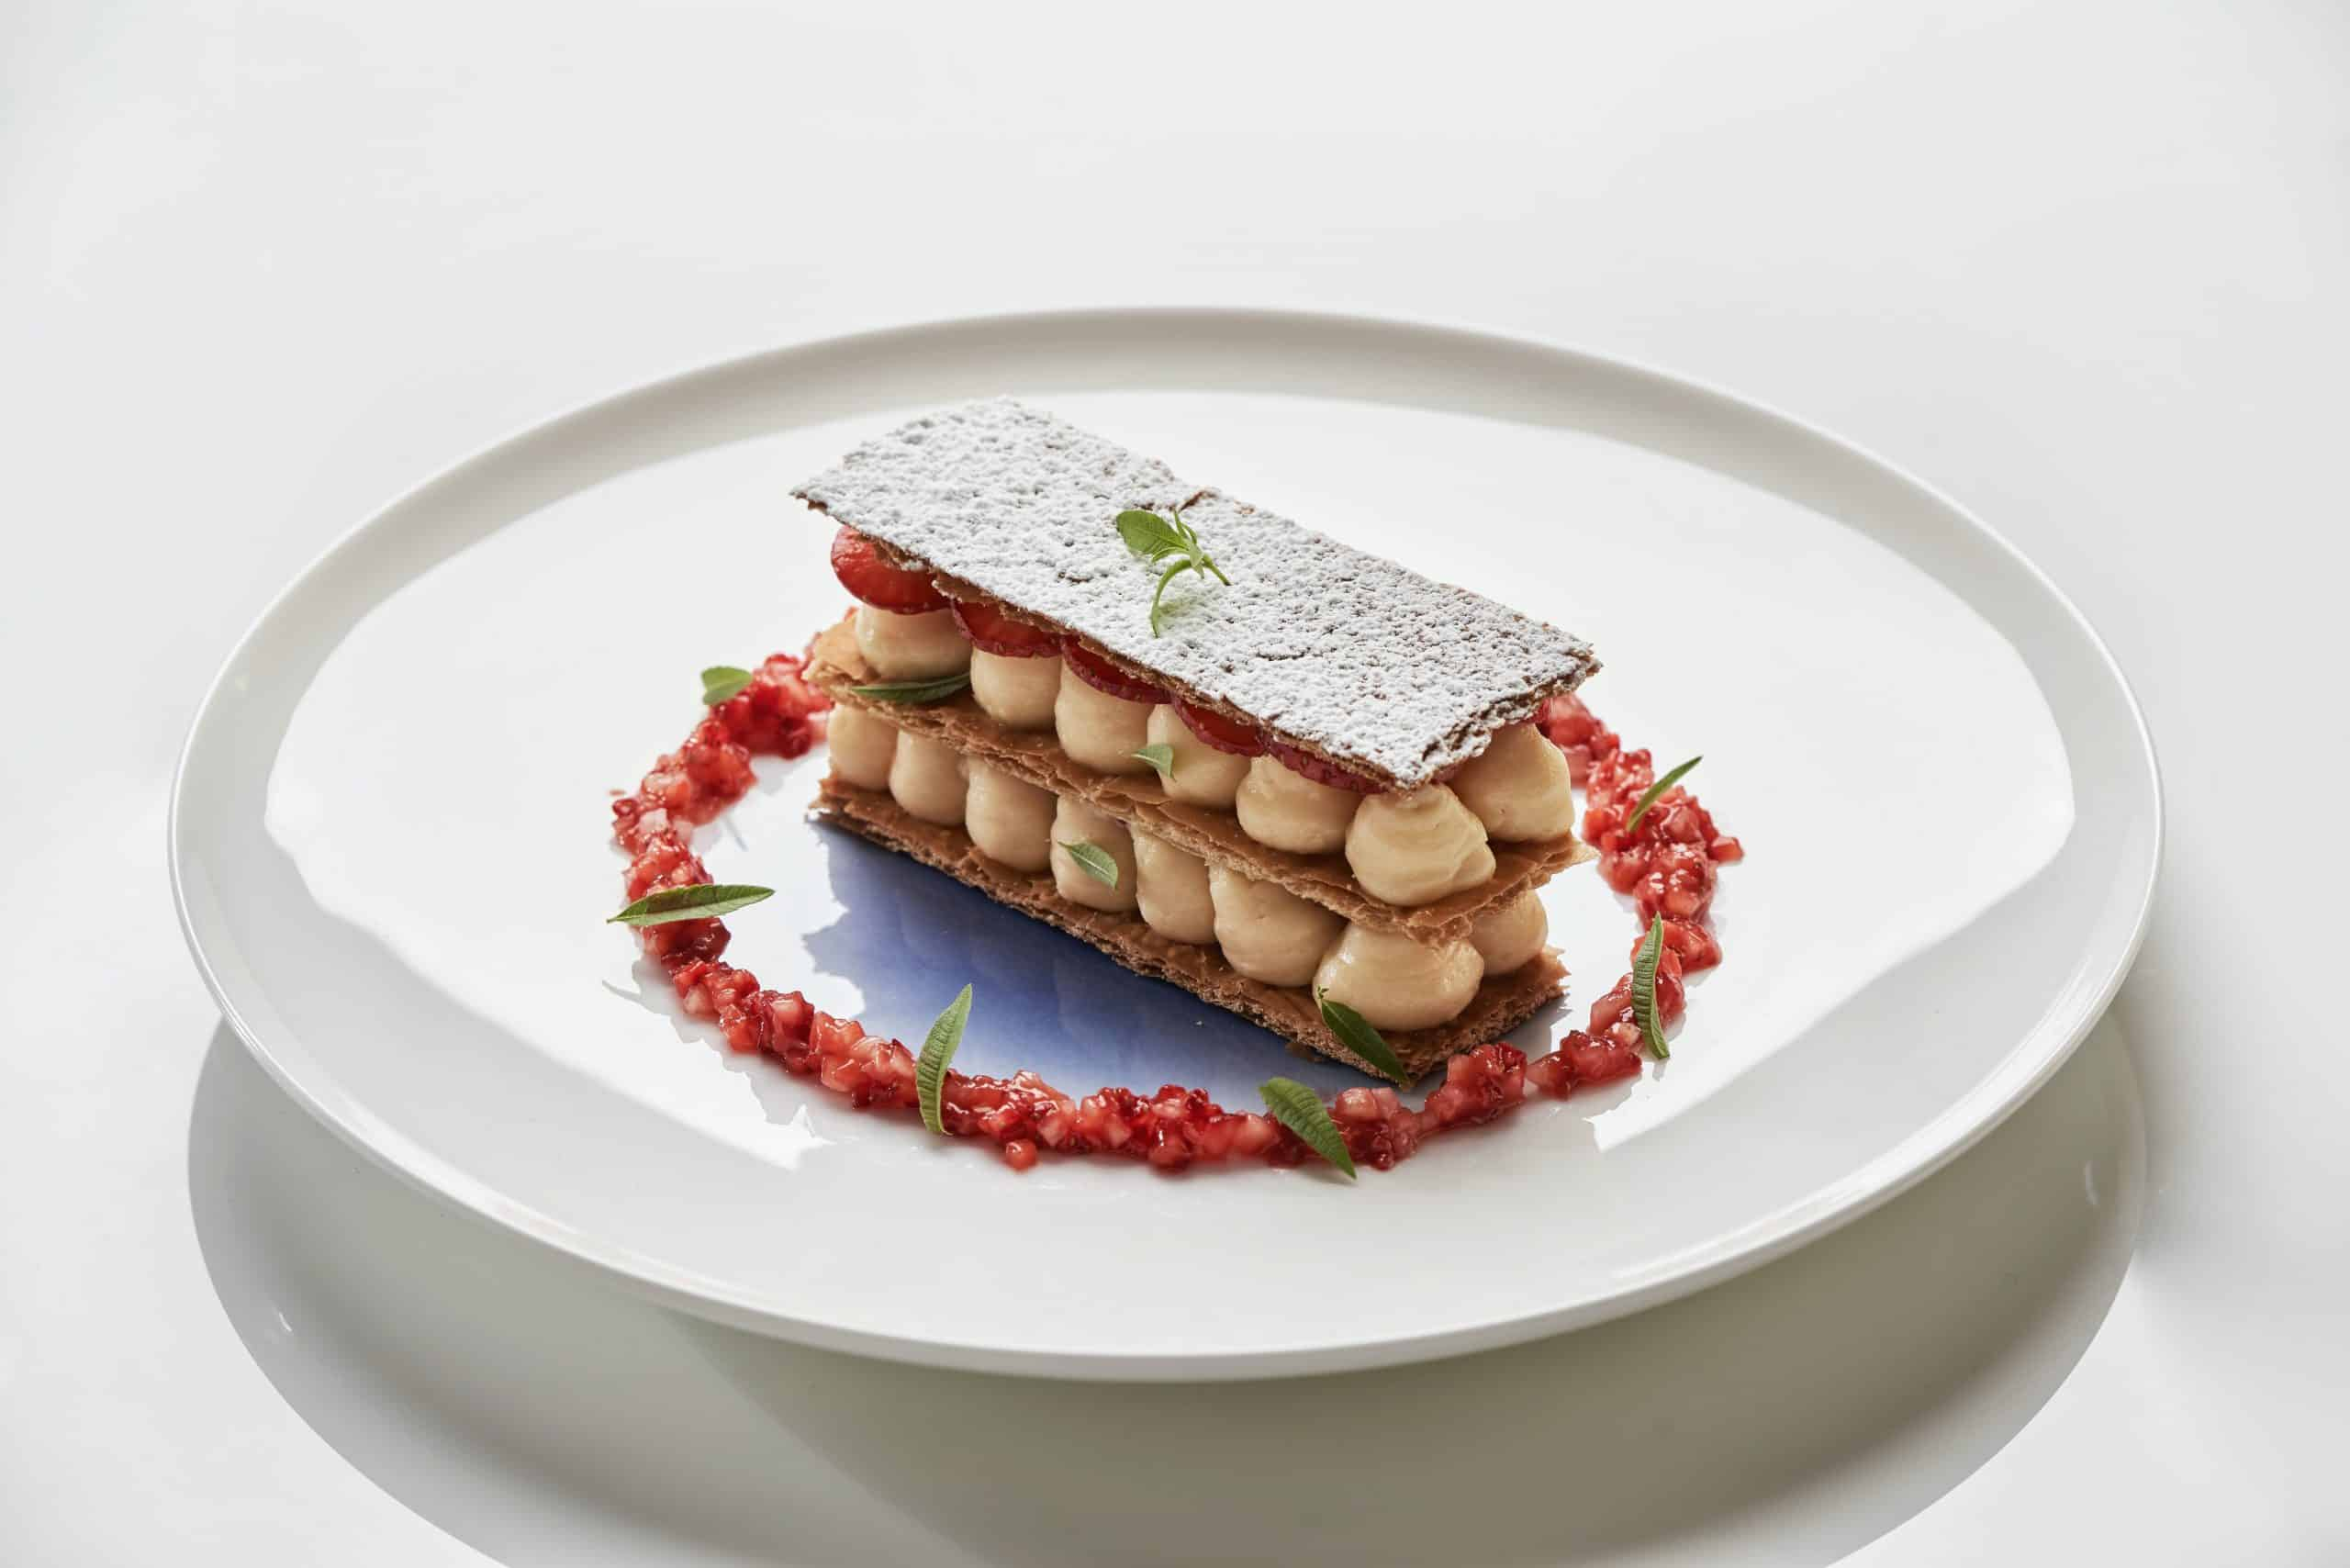 Pied à Terre's Strawberry Millefeuille recipe